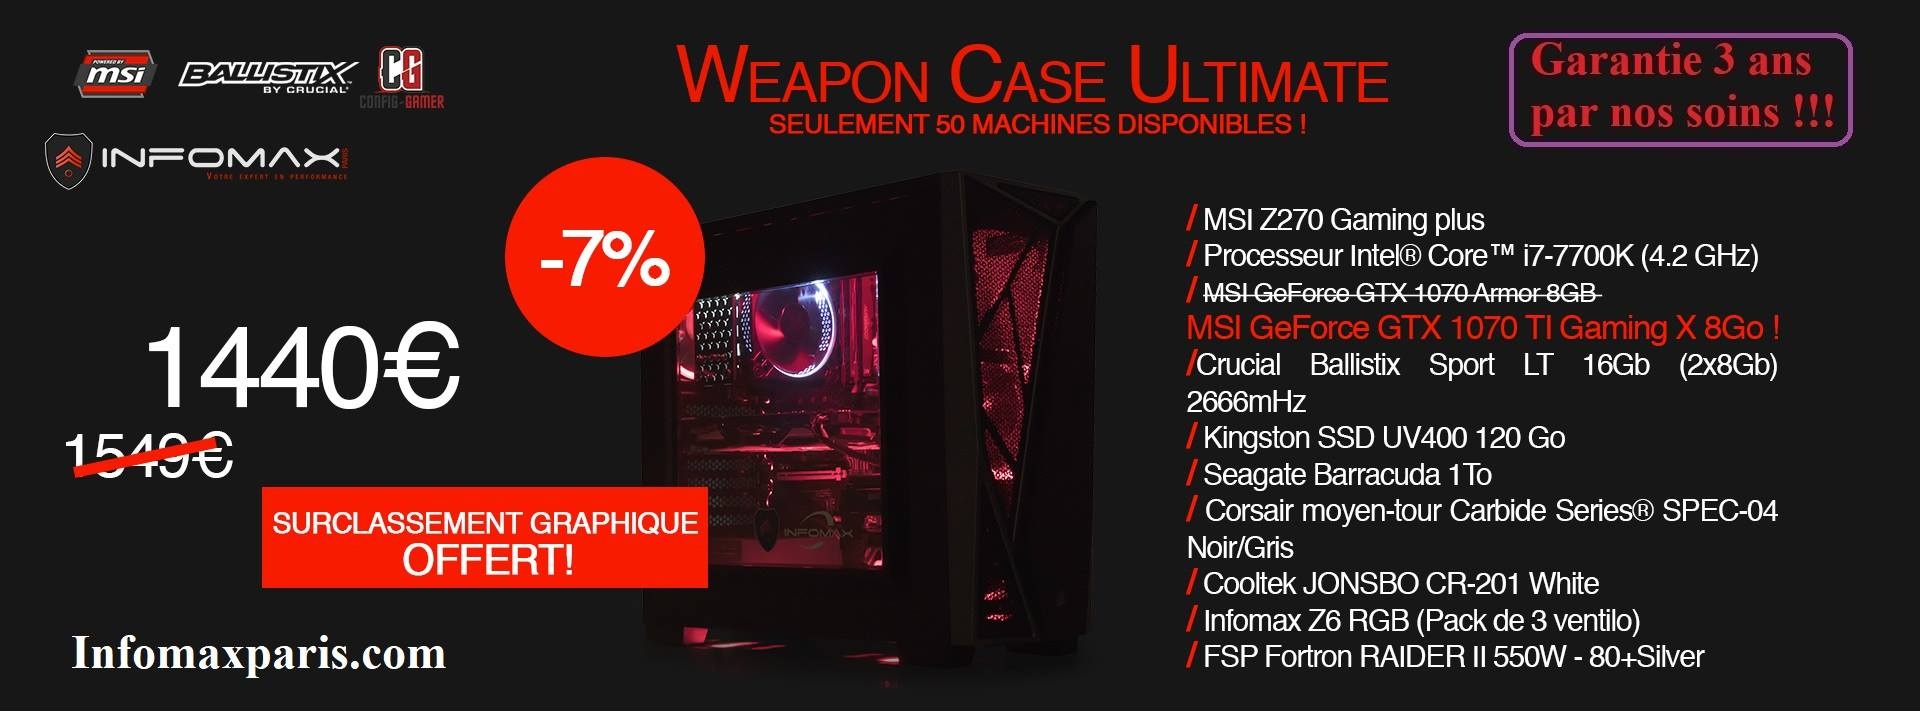 Weapon Case Ultimate